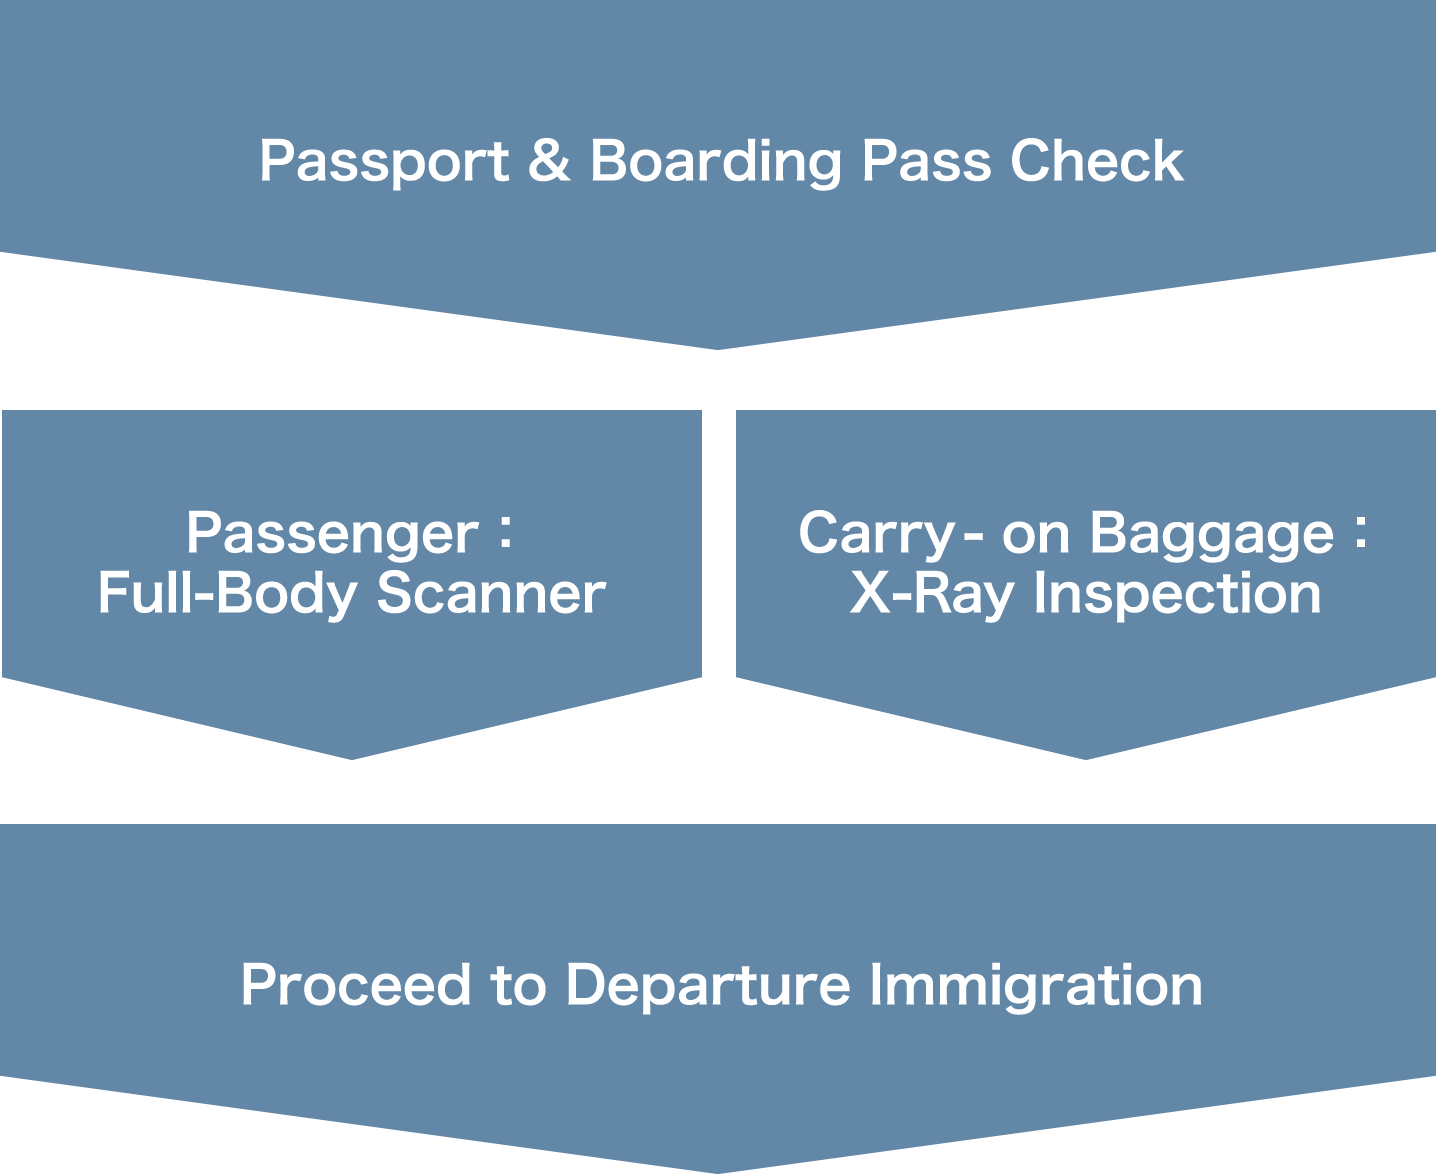 Security Screening Procedures for International Passengers